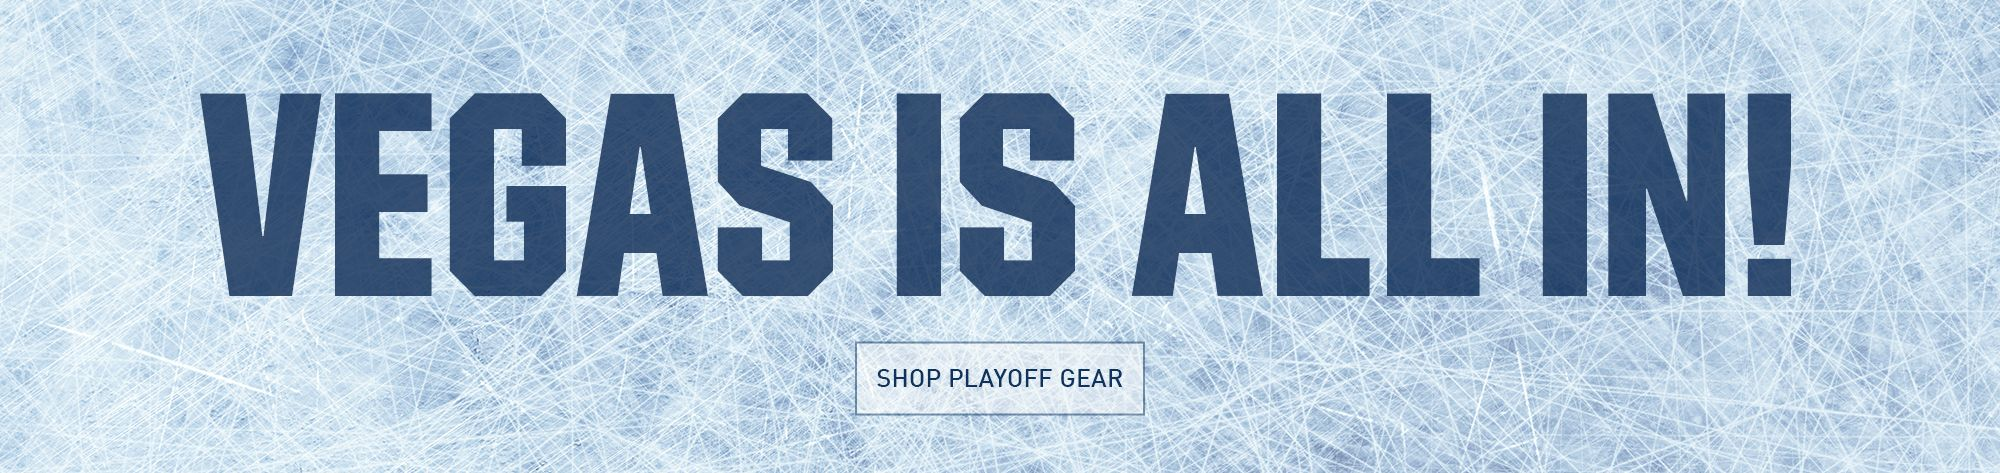 Vegas Is All In - Shop Playoff Gear